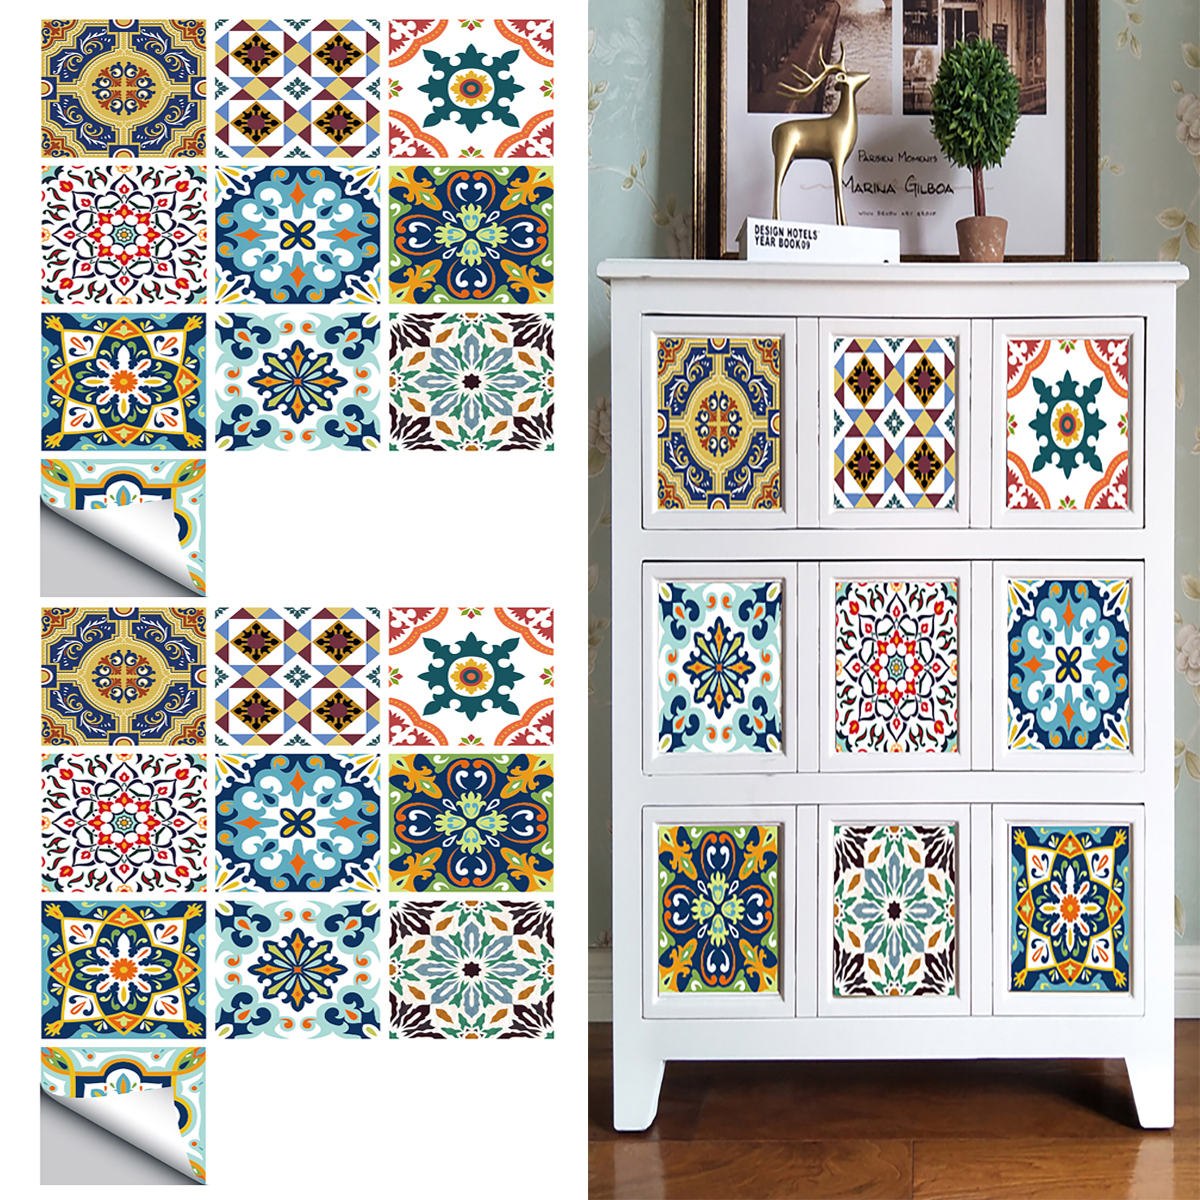 goory 10pcs removable traditional mexican talavera tile stickers for bathroom kitchen backsplash decoration 4x4 inch wall sticker decals